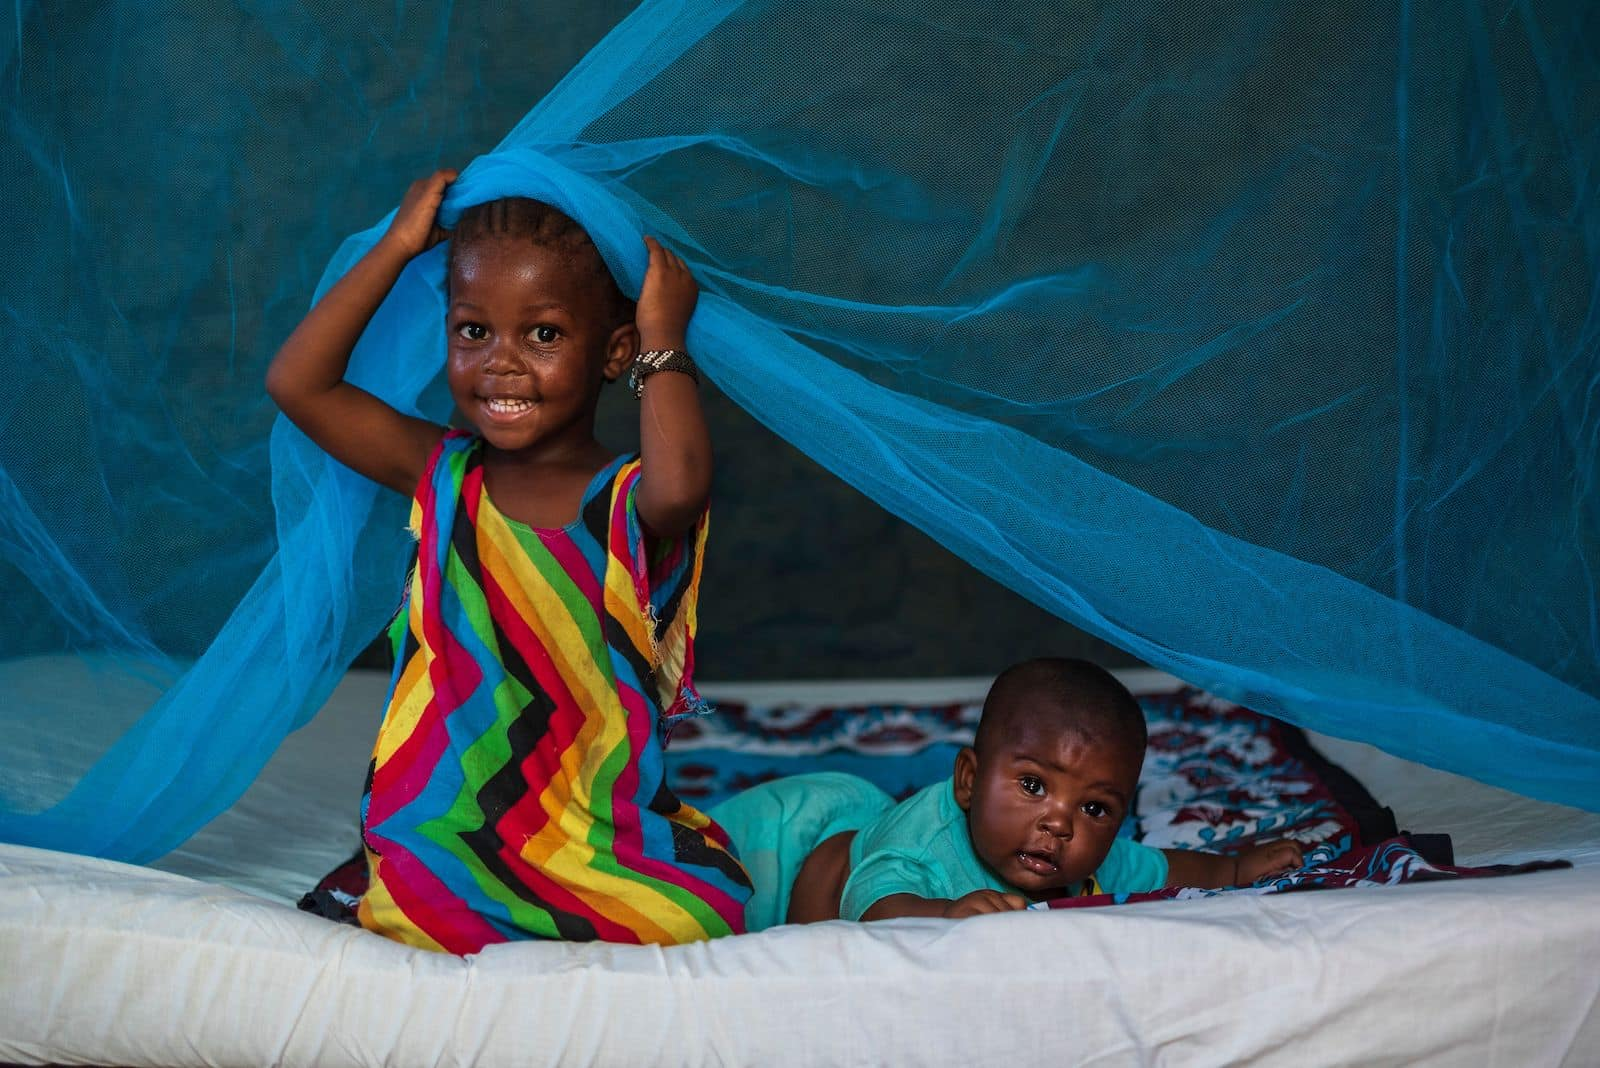 A girl and a baby sit on a bed with a malaria net on it.